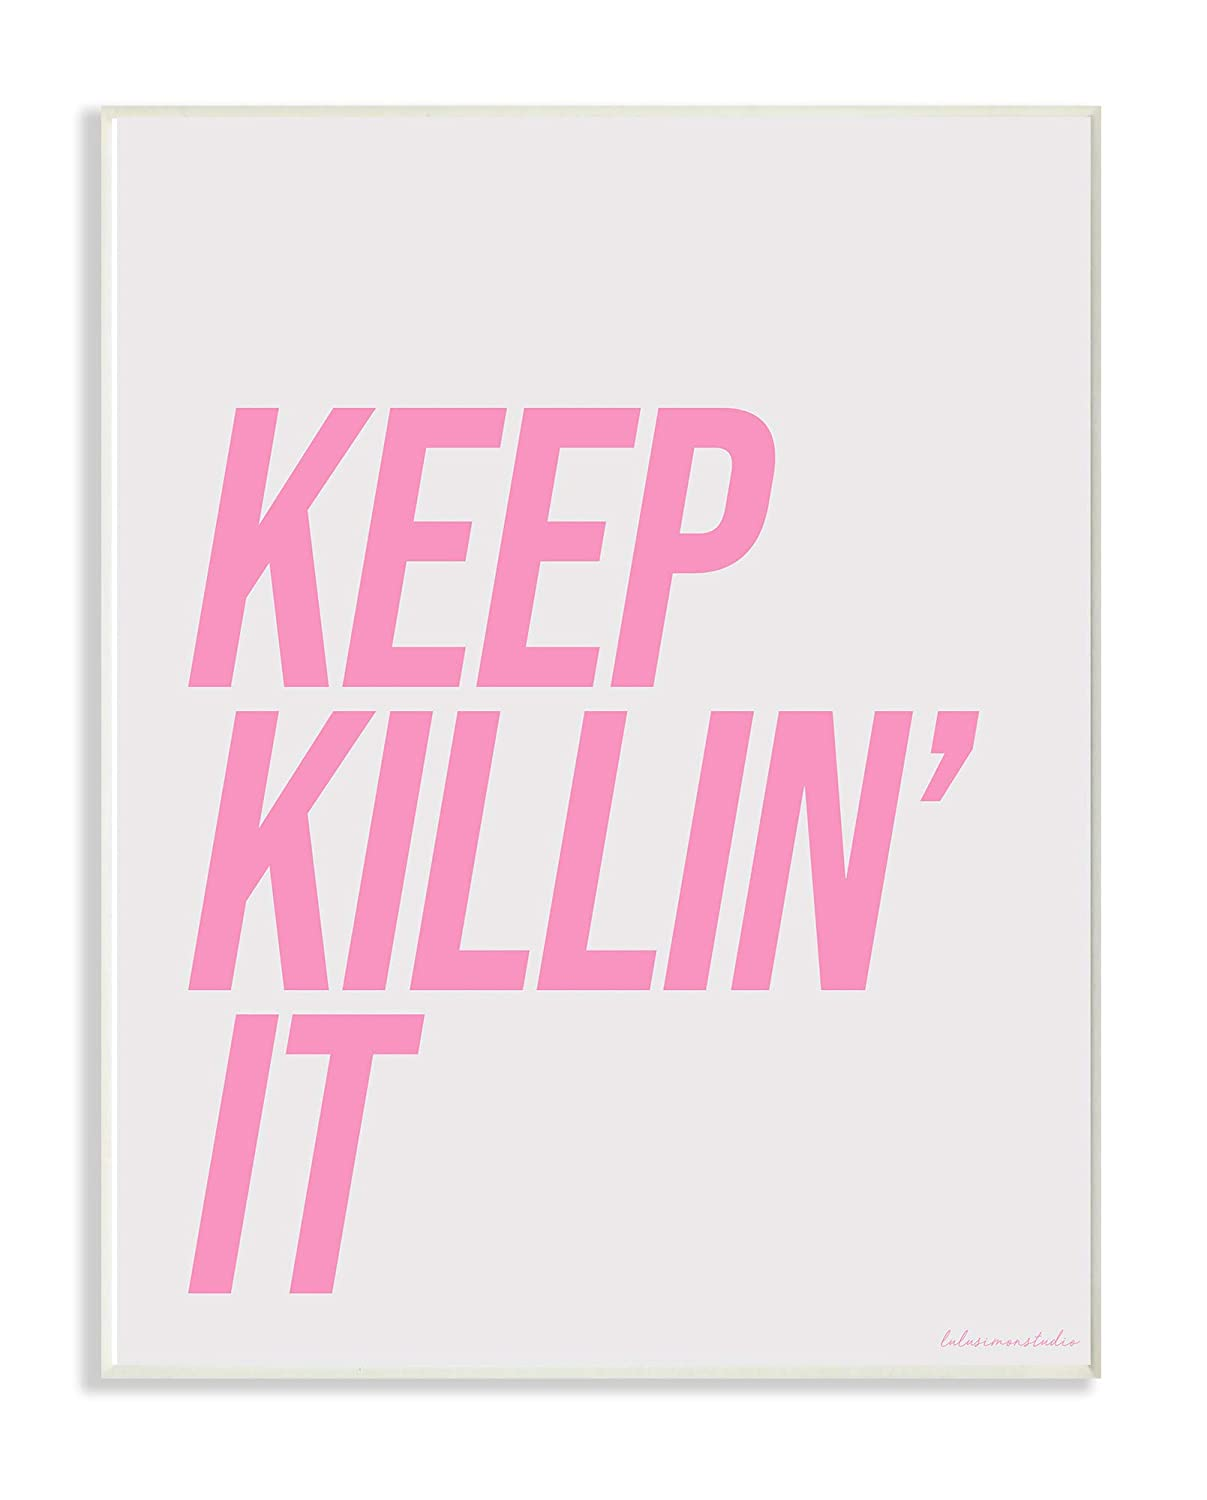 16 x 1.5 x 20 The Stupell Home D/écor Collection lulusimonSTUDIO Pink and Grey Keep Killin It Typography Oversized Framed Giclee Texturized Art